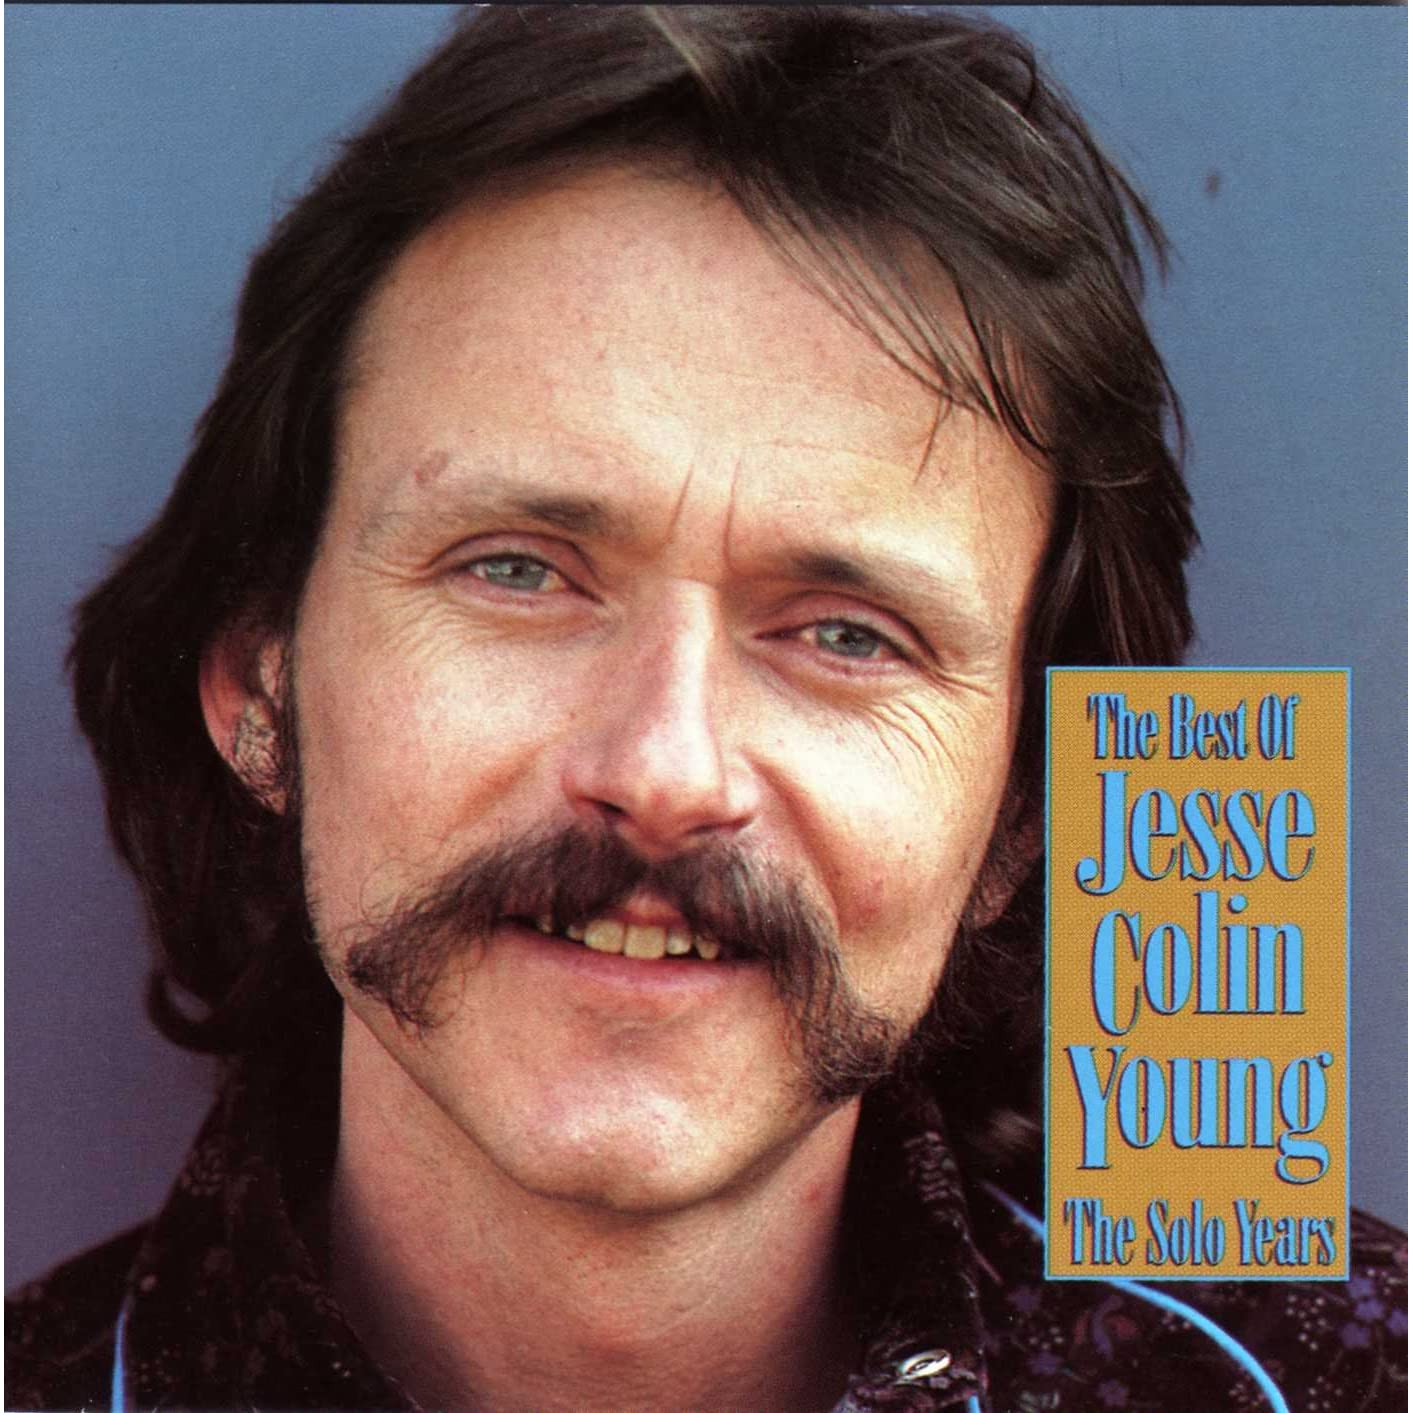 Best Of Jesse Colin Young